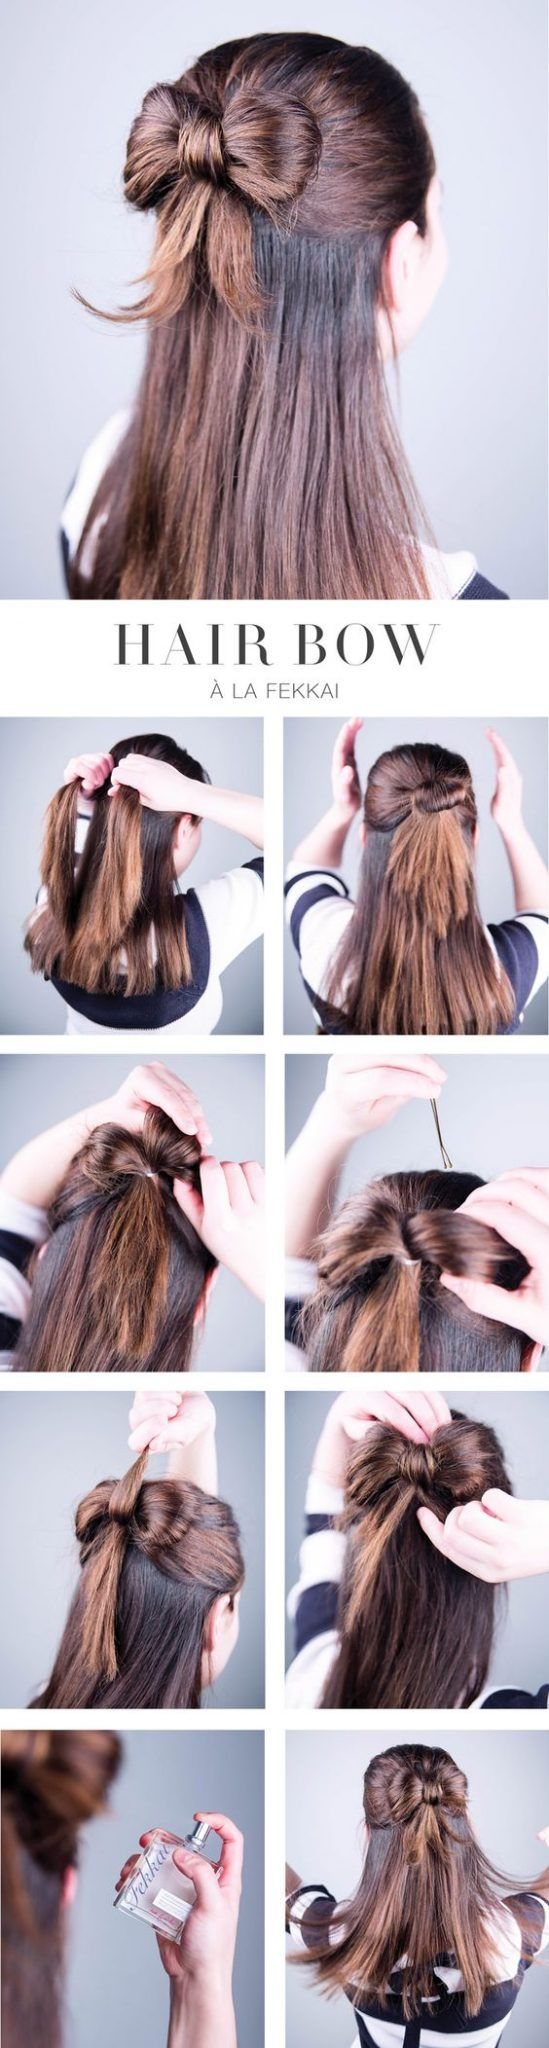 Awe Inspiring 1000 Ideas About Bow Hairstyle Tutorial On Pinterest Hair Bow Short Hairstyles Gunalazisus